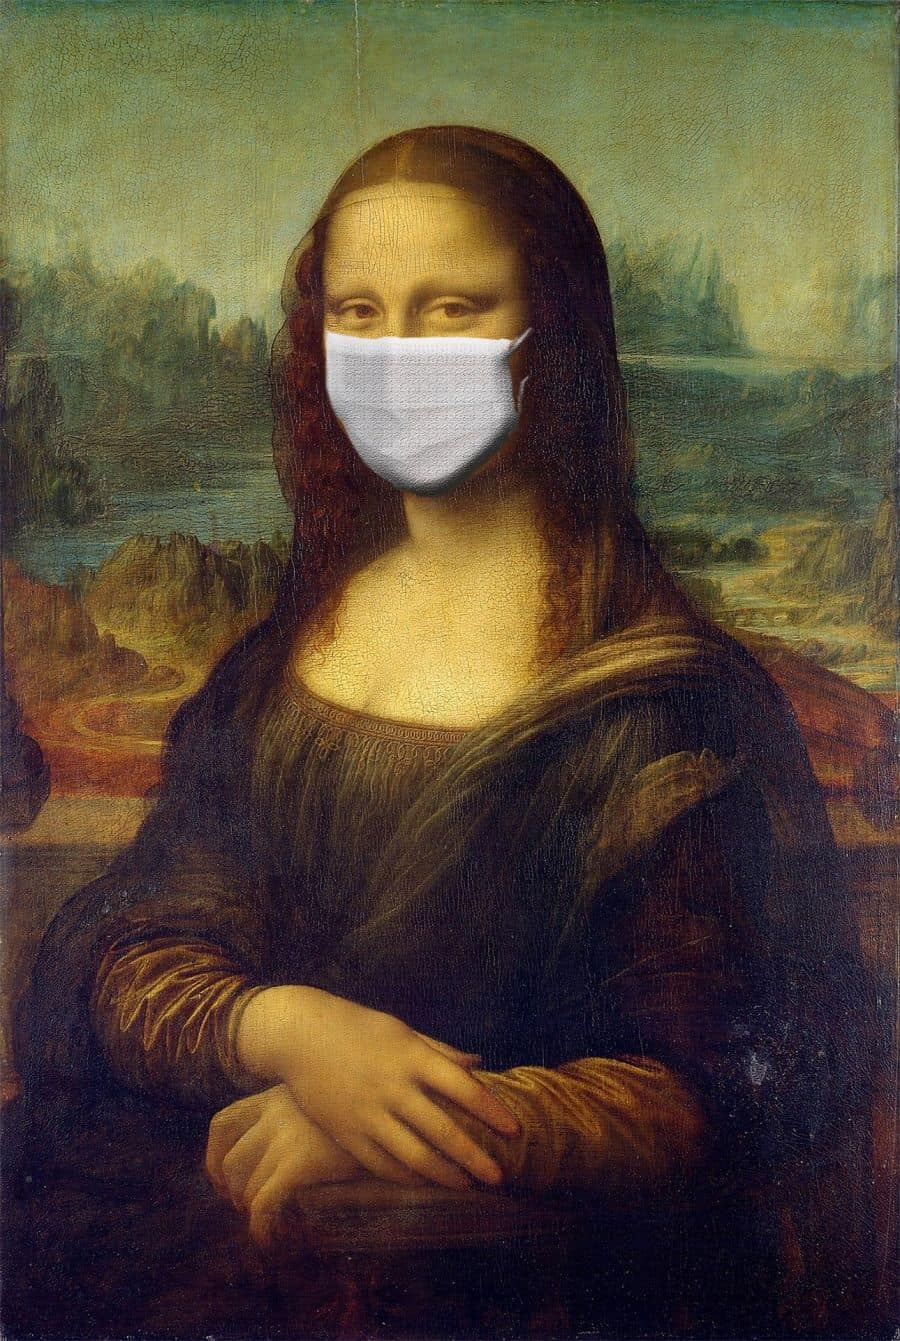 mona lisa with face mask. Image by Sumanley xulx from Pixabay